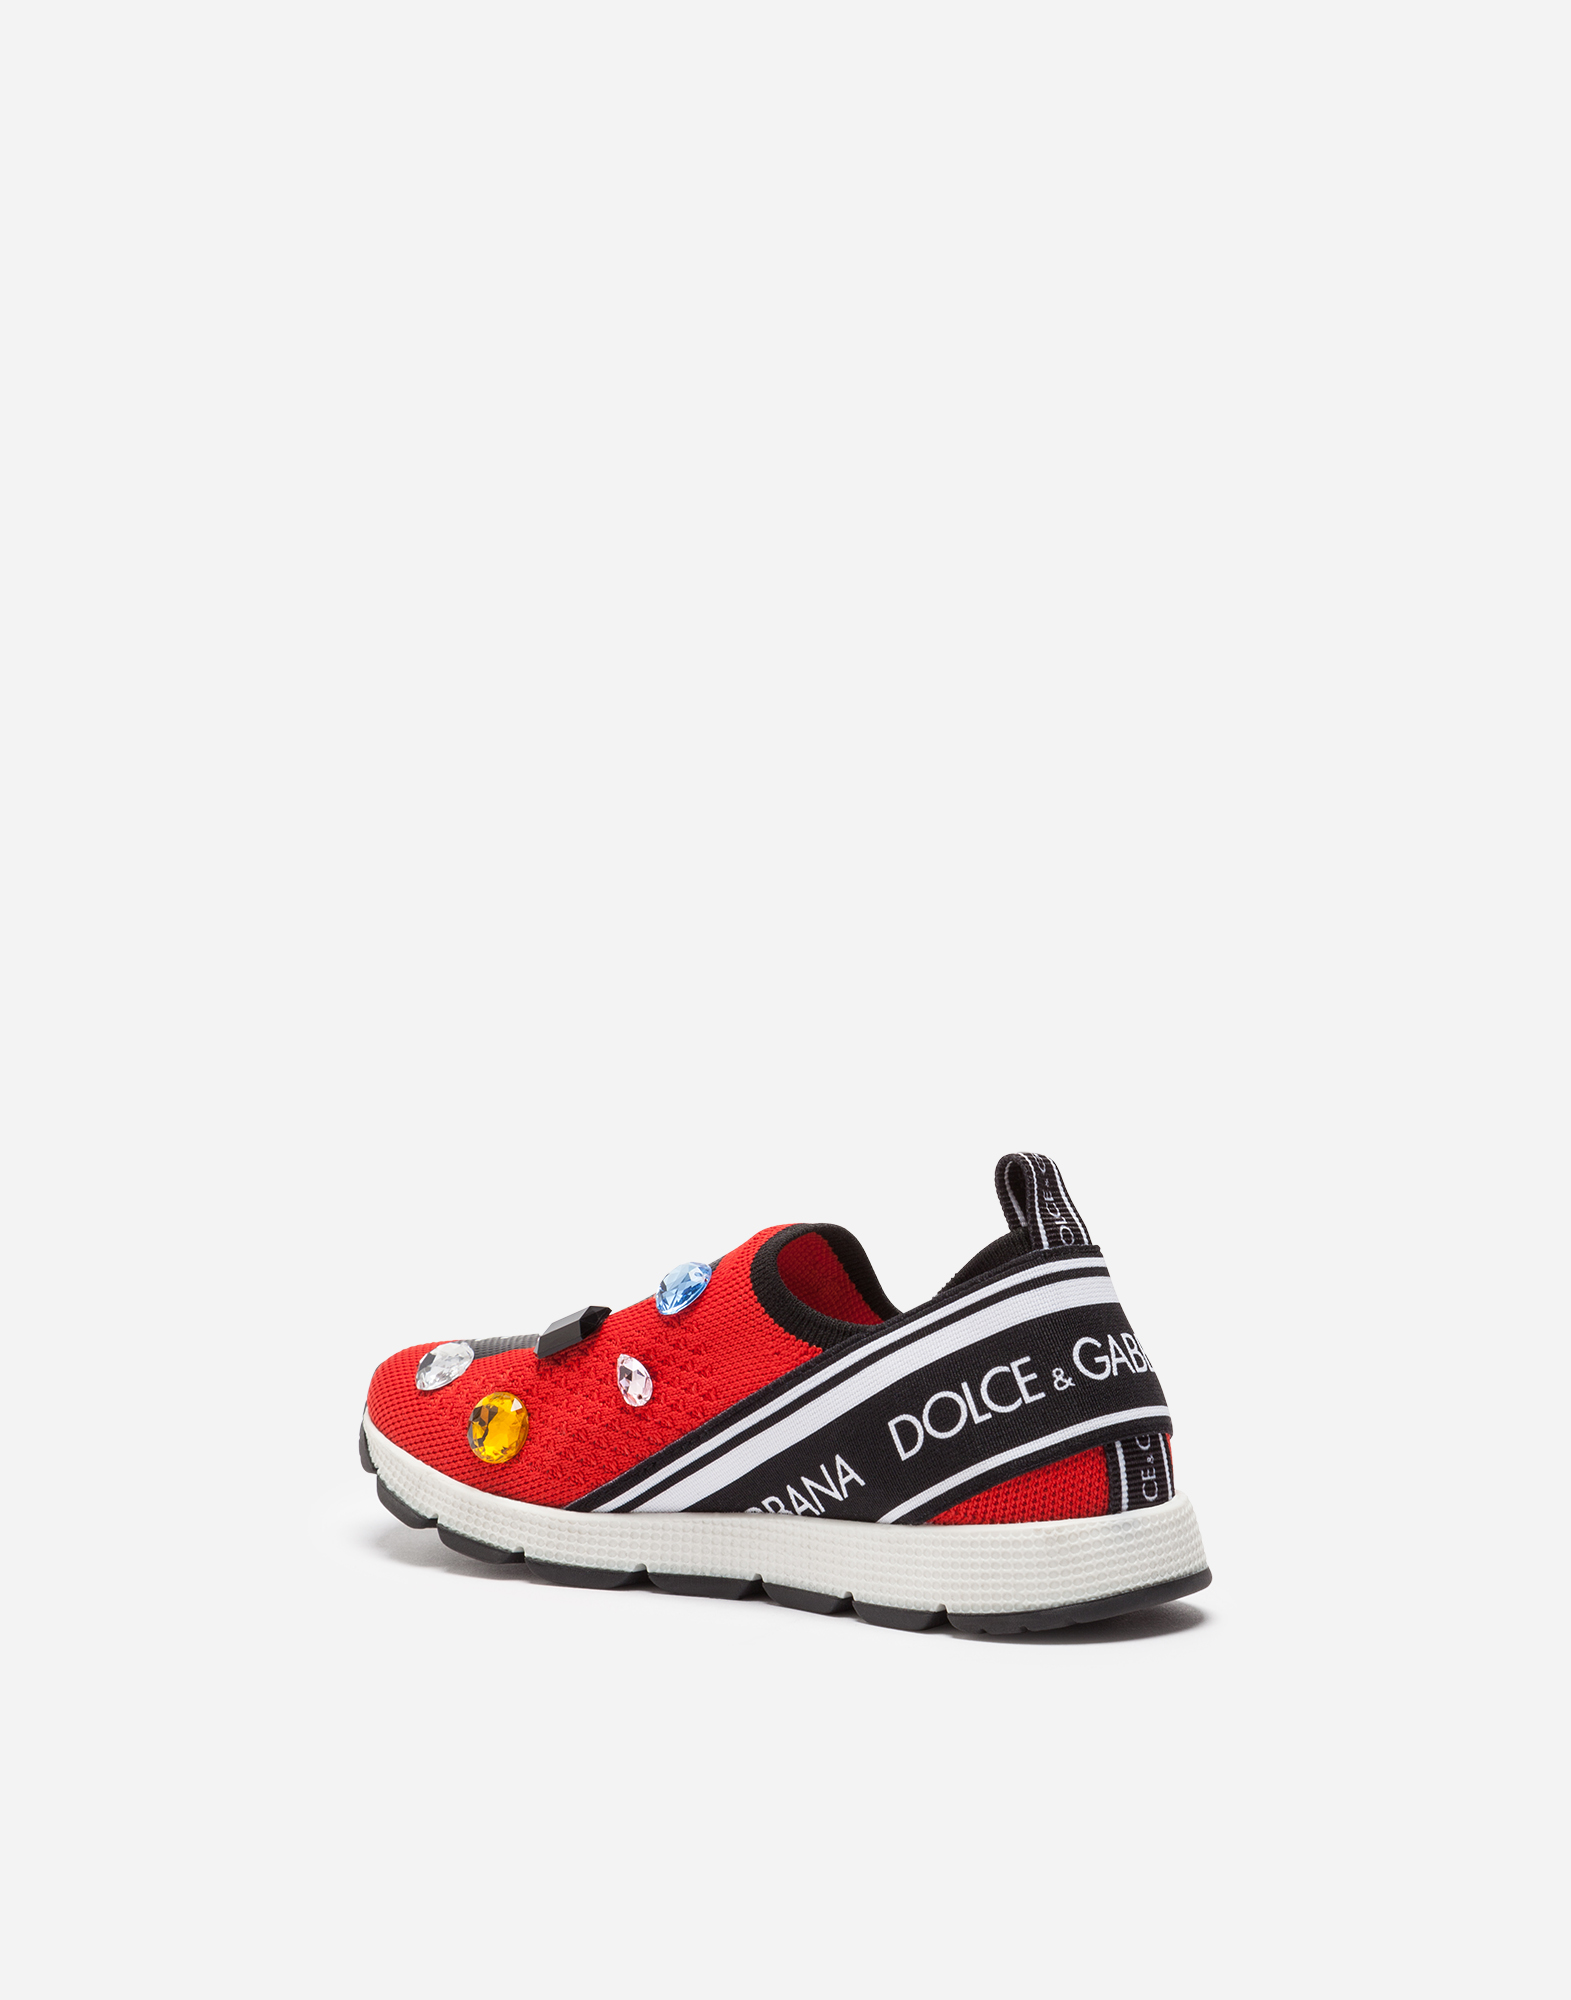 Dolce & Gabbana SORRENTO SNEAKERS WITH RHINESTONES AND EMBROIDERY